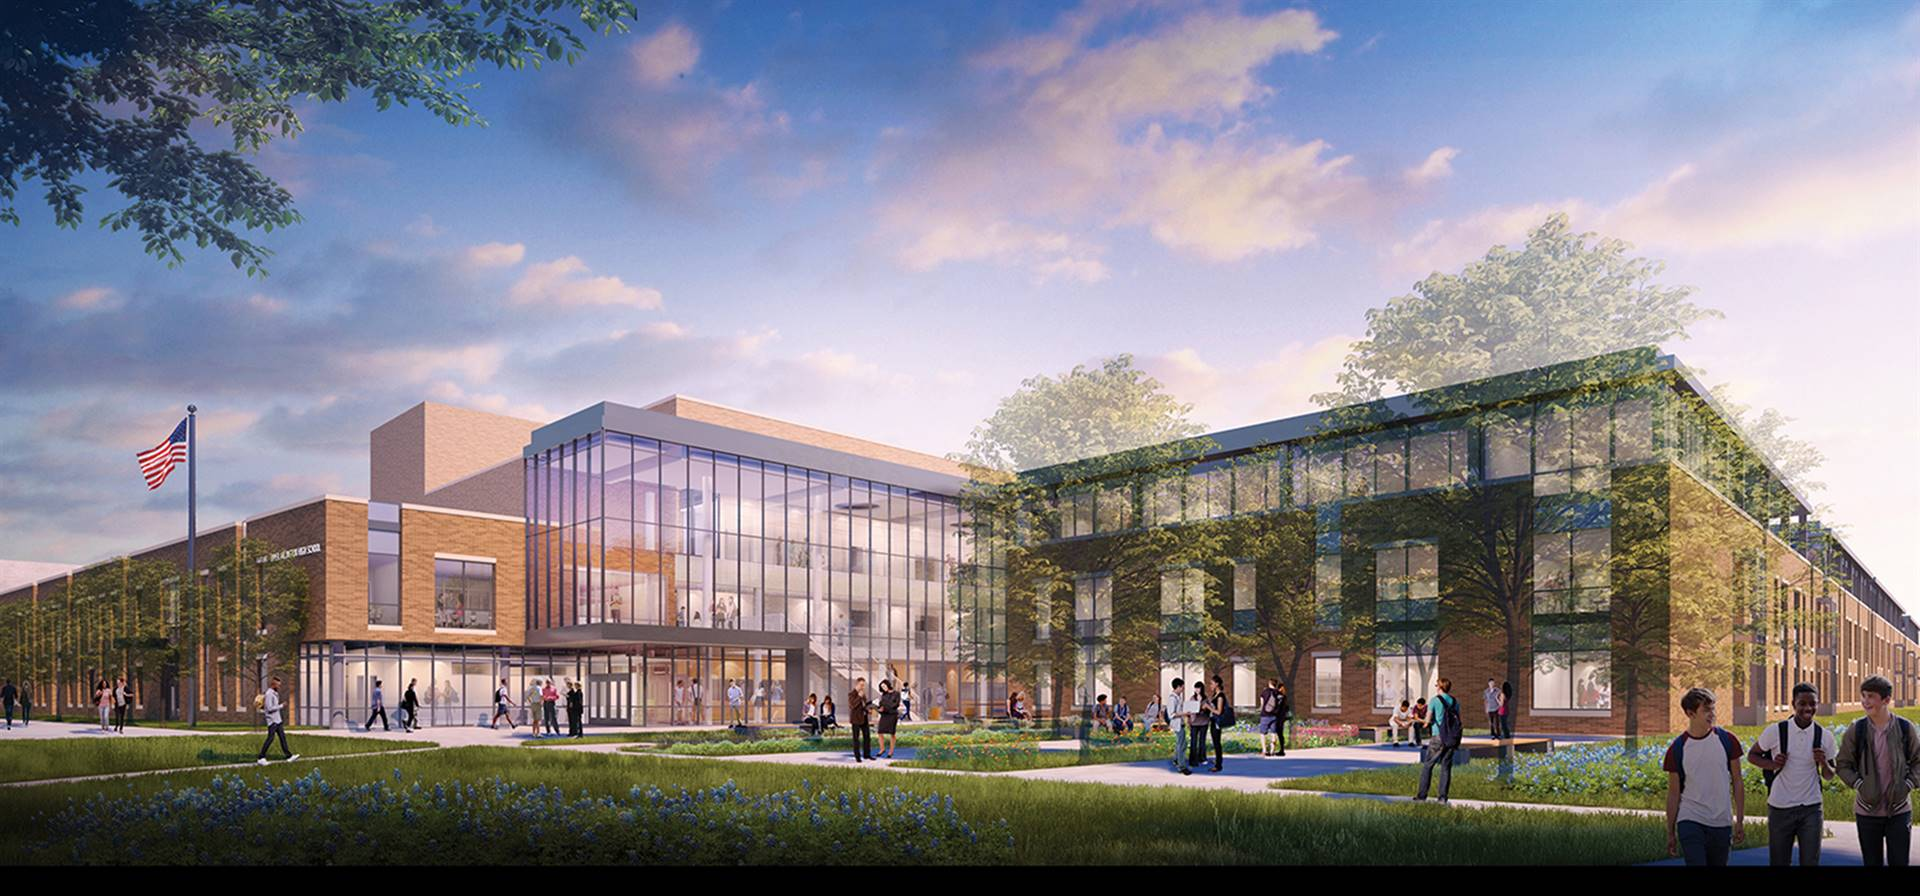 A rendering of the main entry to a new Upper Arlington High School